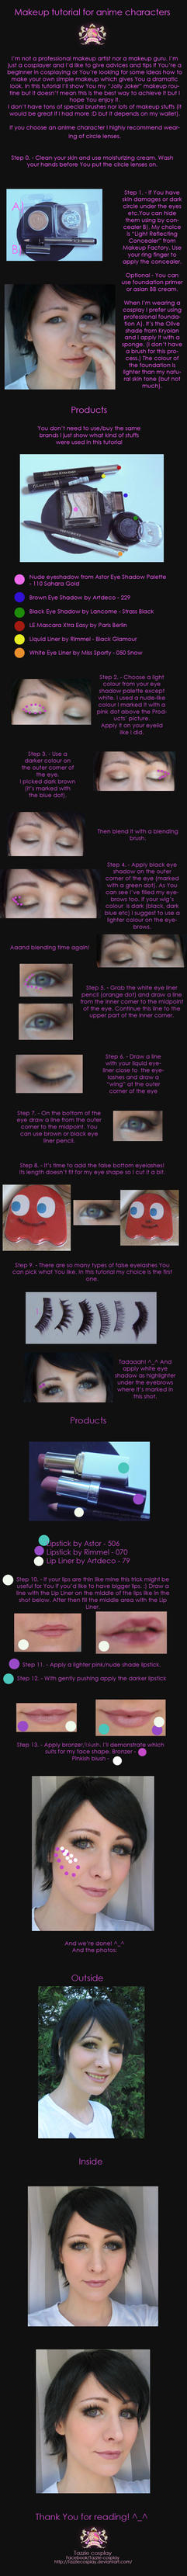 Cosplay makeup tutorial for anime characters by tazziecosplay on cosplay makeup tutorial for anime characters by tazziecosplay baditri Gallery